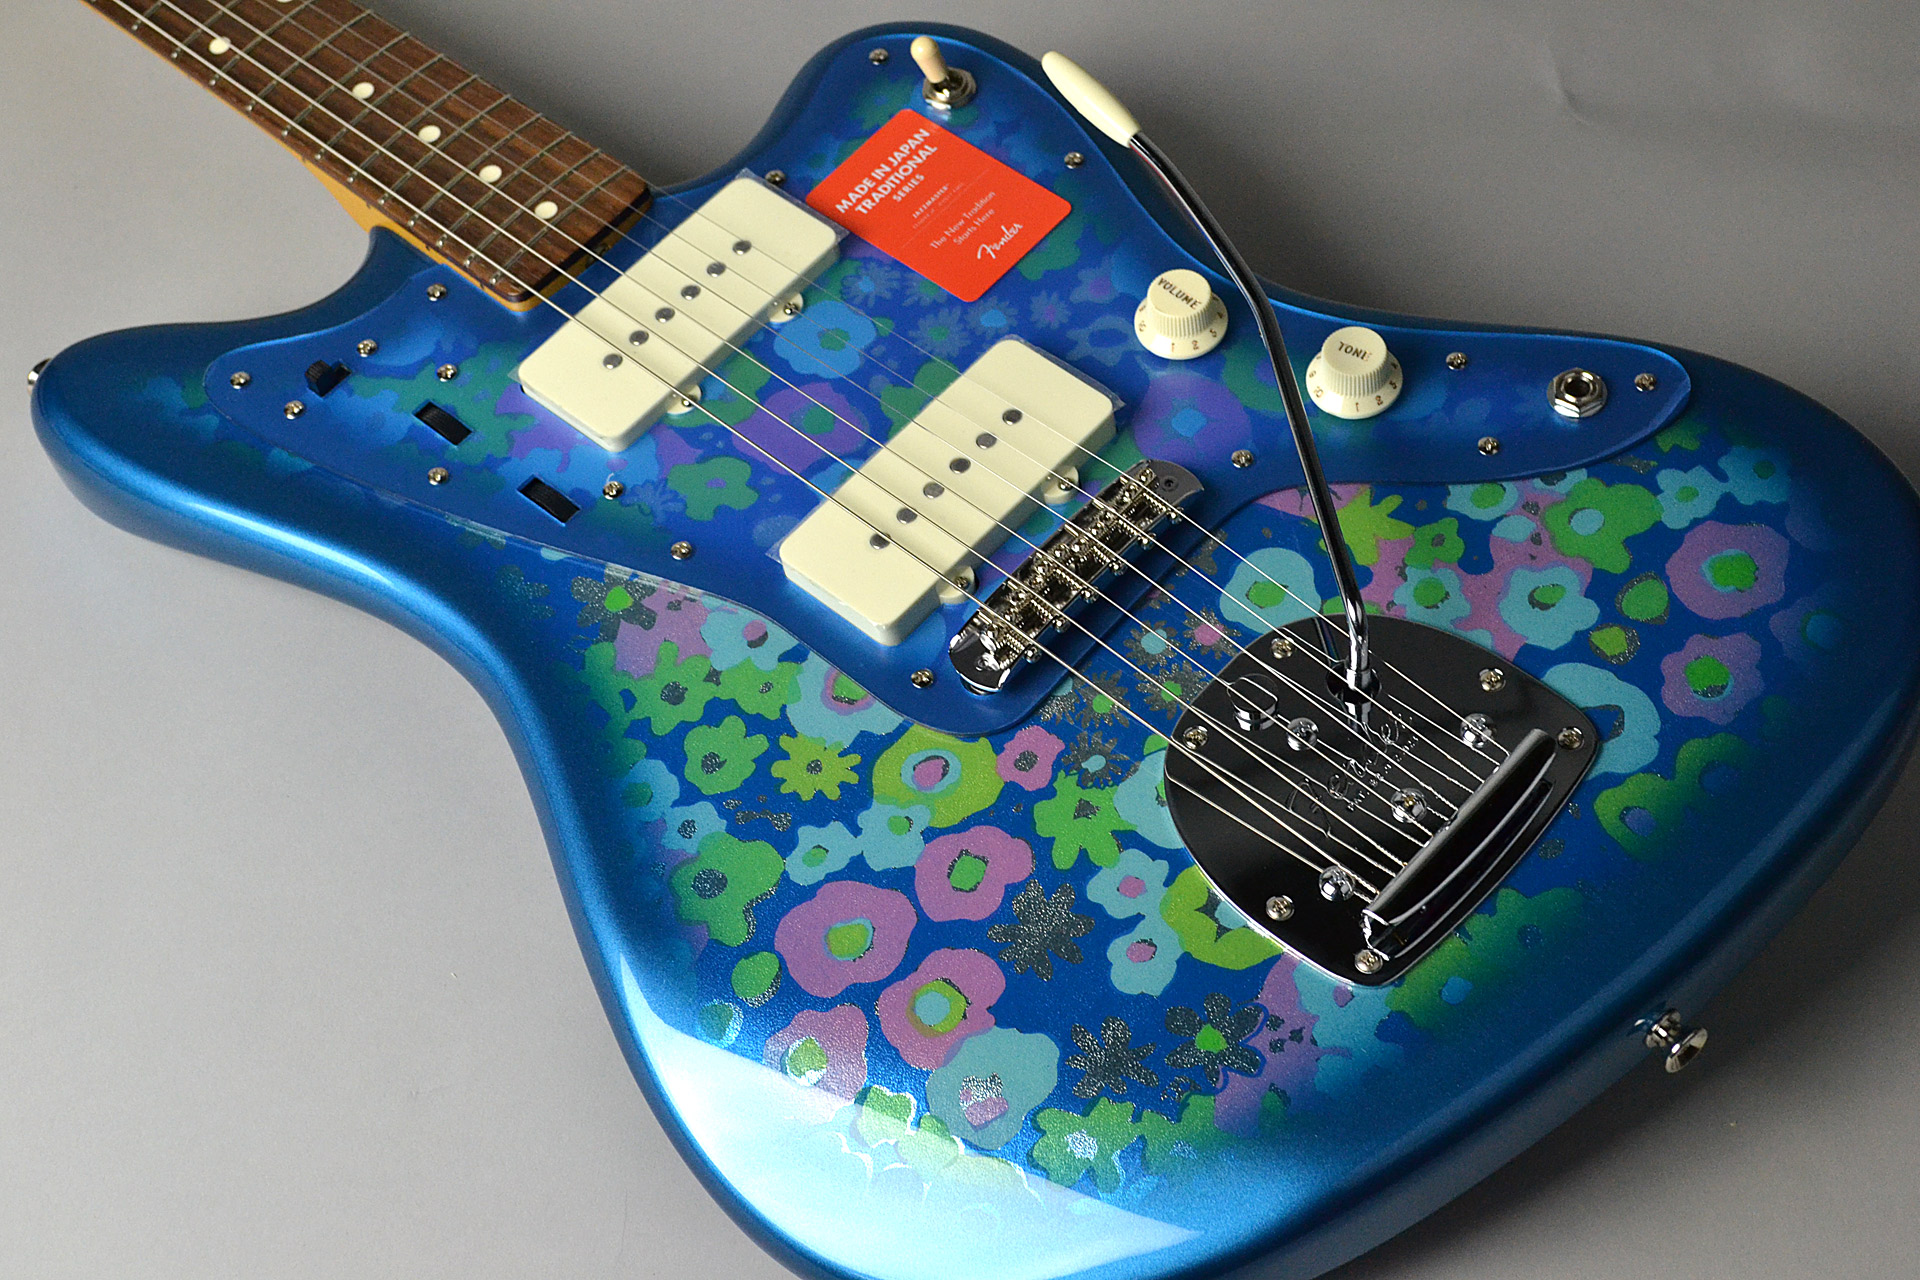 MADE IN JAPAN TRADITIONAL 60S Jazzmaster Blue Flowerの全体画像(縦)